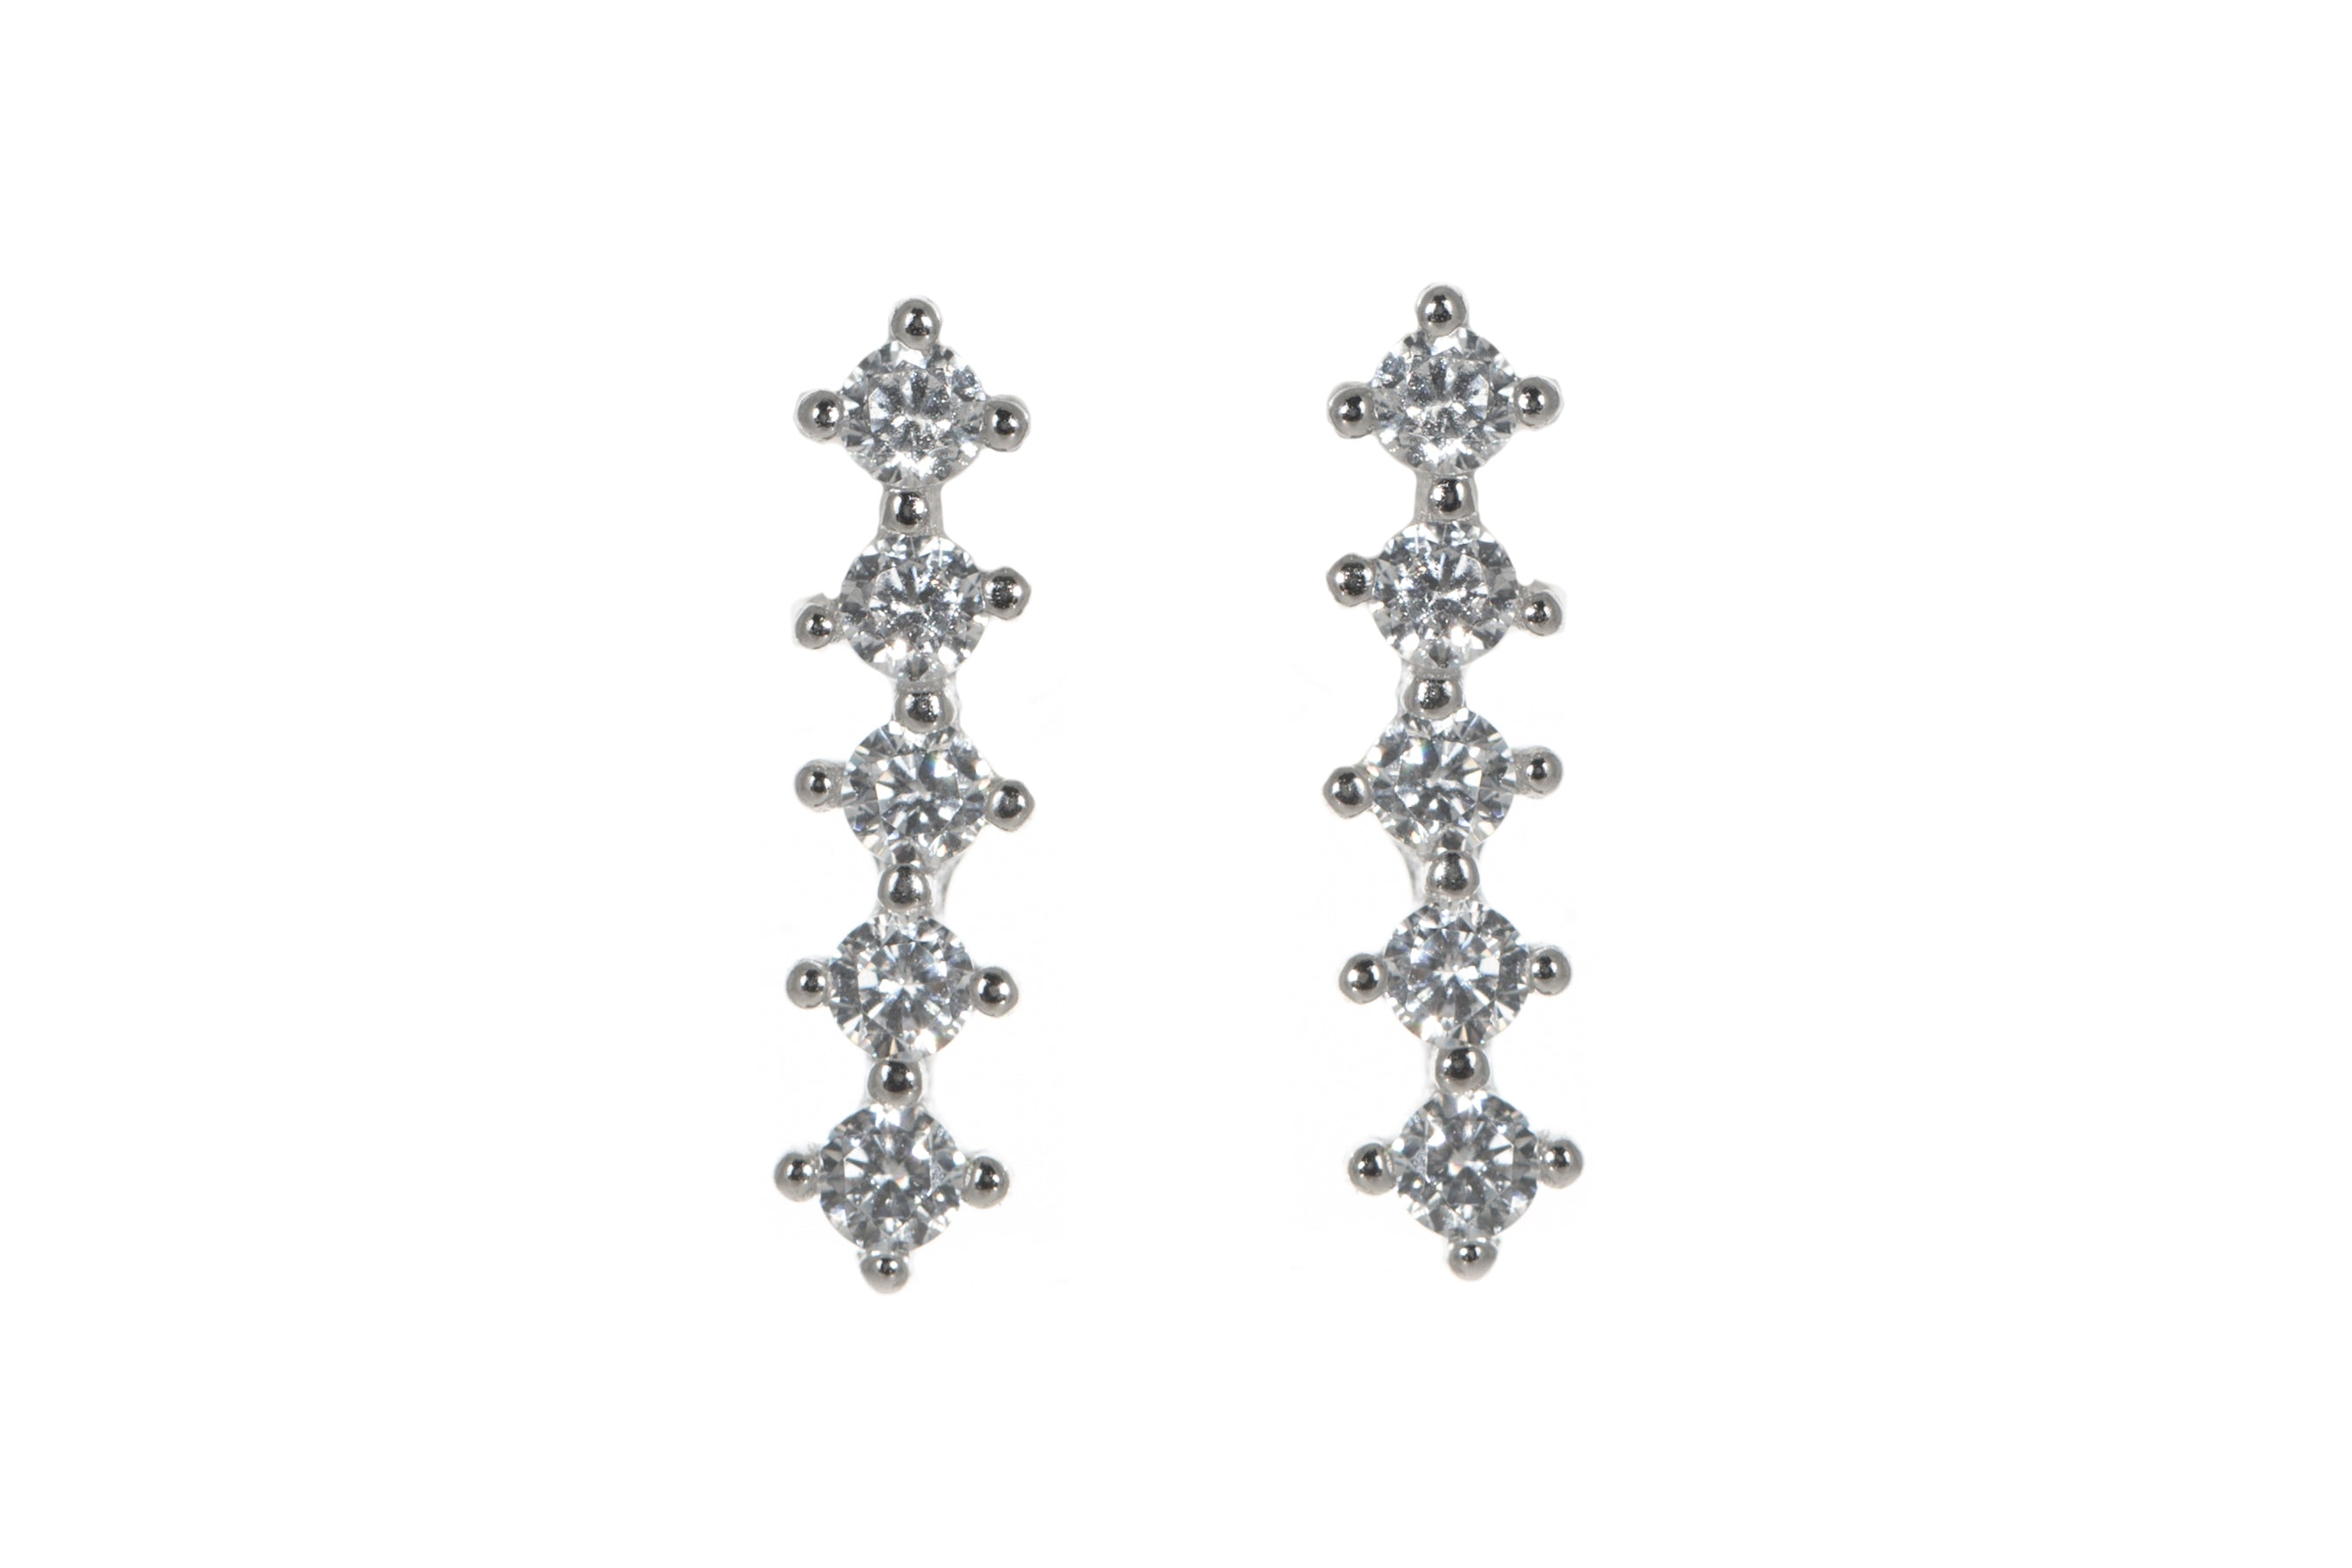 Glitzy bar earrings